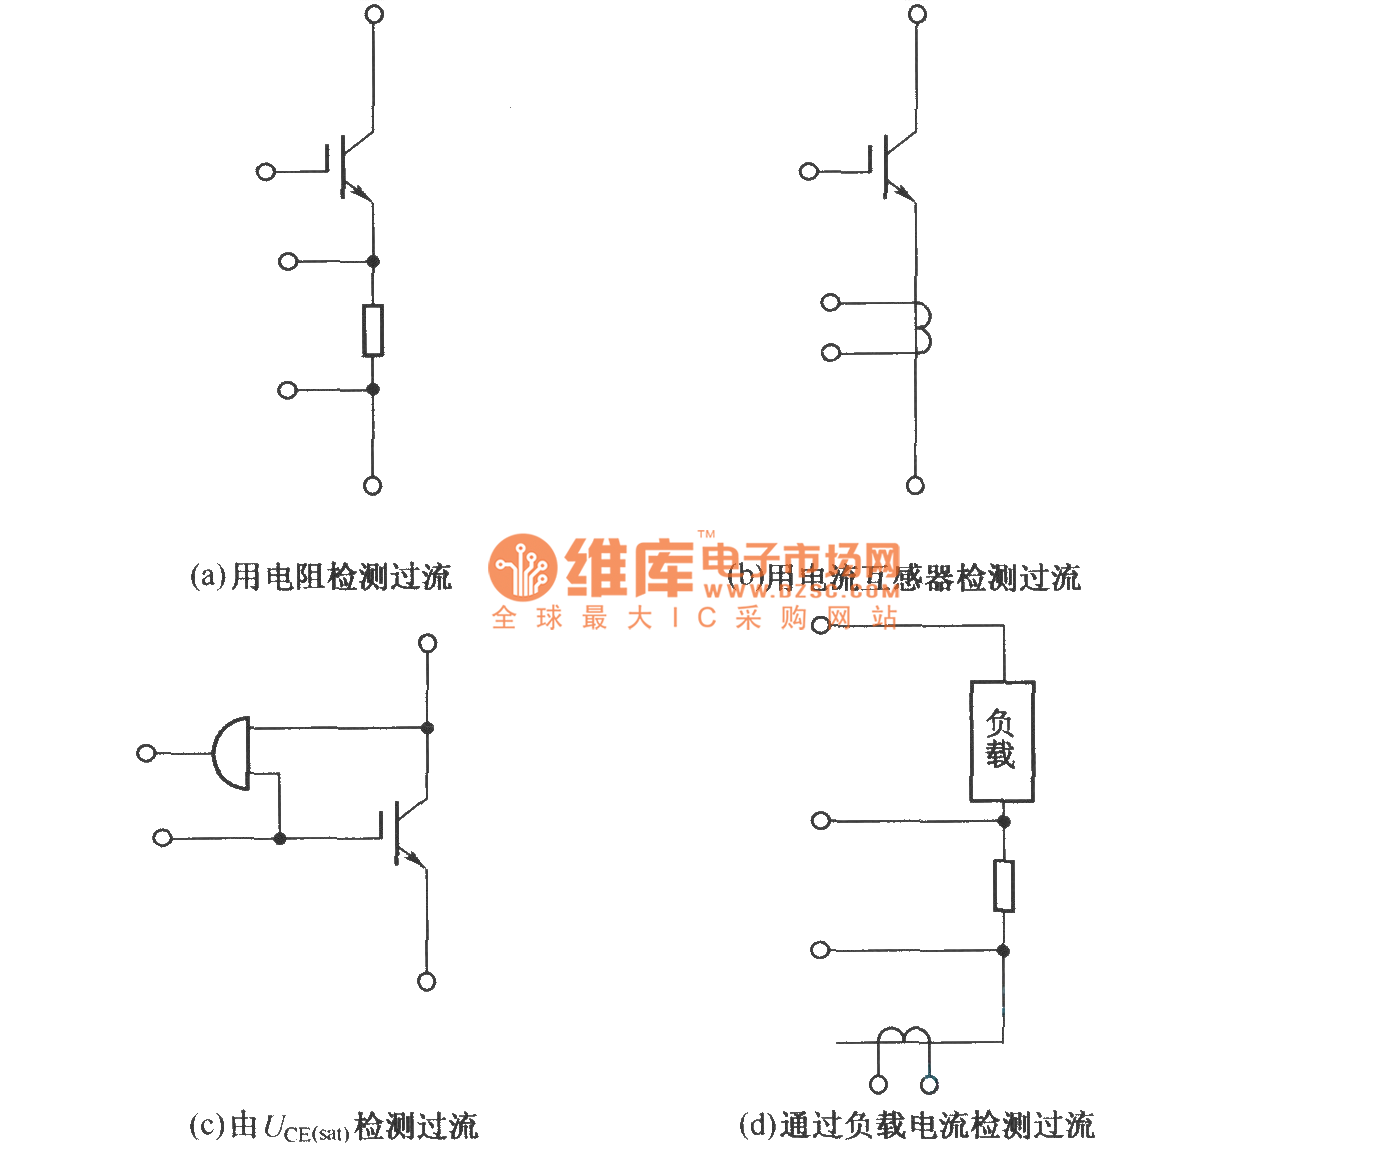 Igbt Collector Over Current Detection Circuit Calculator Schematic Free Download Wiring Diagram